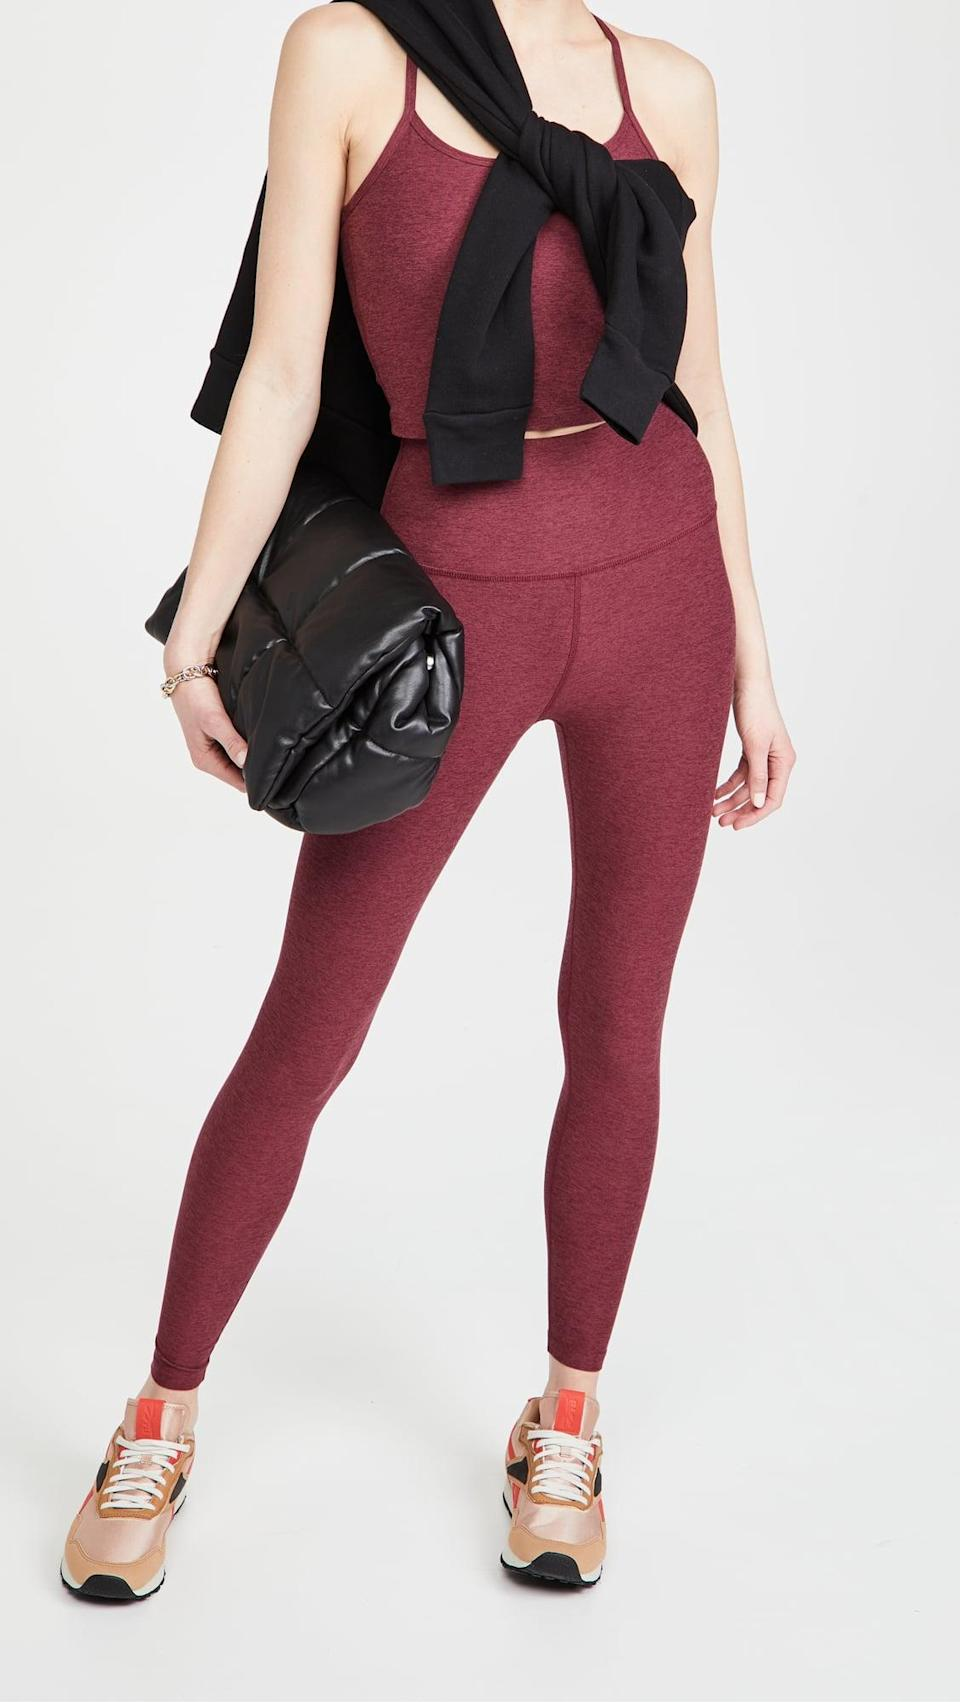 <p>Once you try on this flattering, comfortable <span>Beyond Yoga Spacedye Slim Racerback Cropped Tank</span> ($66) and <span>High Waisted Midi Leggings</span> ($97), you won't want to take it off. It's the perfect set for the pilates to brunch moment you're planning to have this weekend.</p>